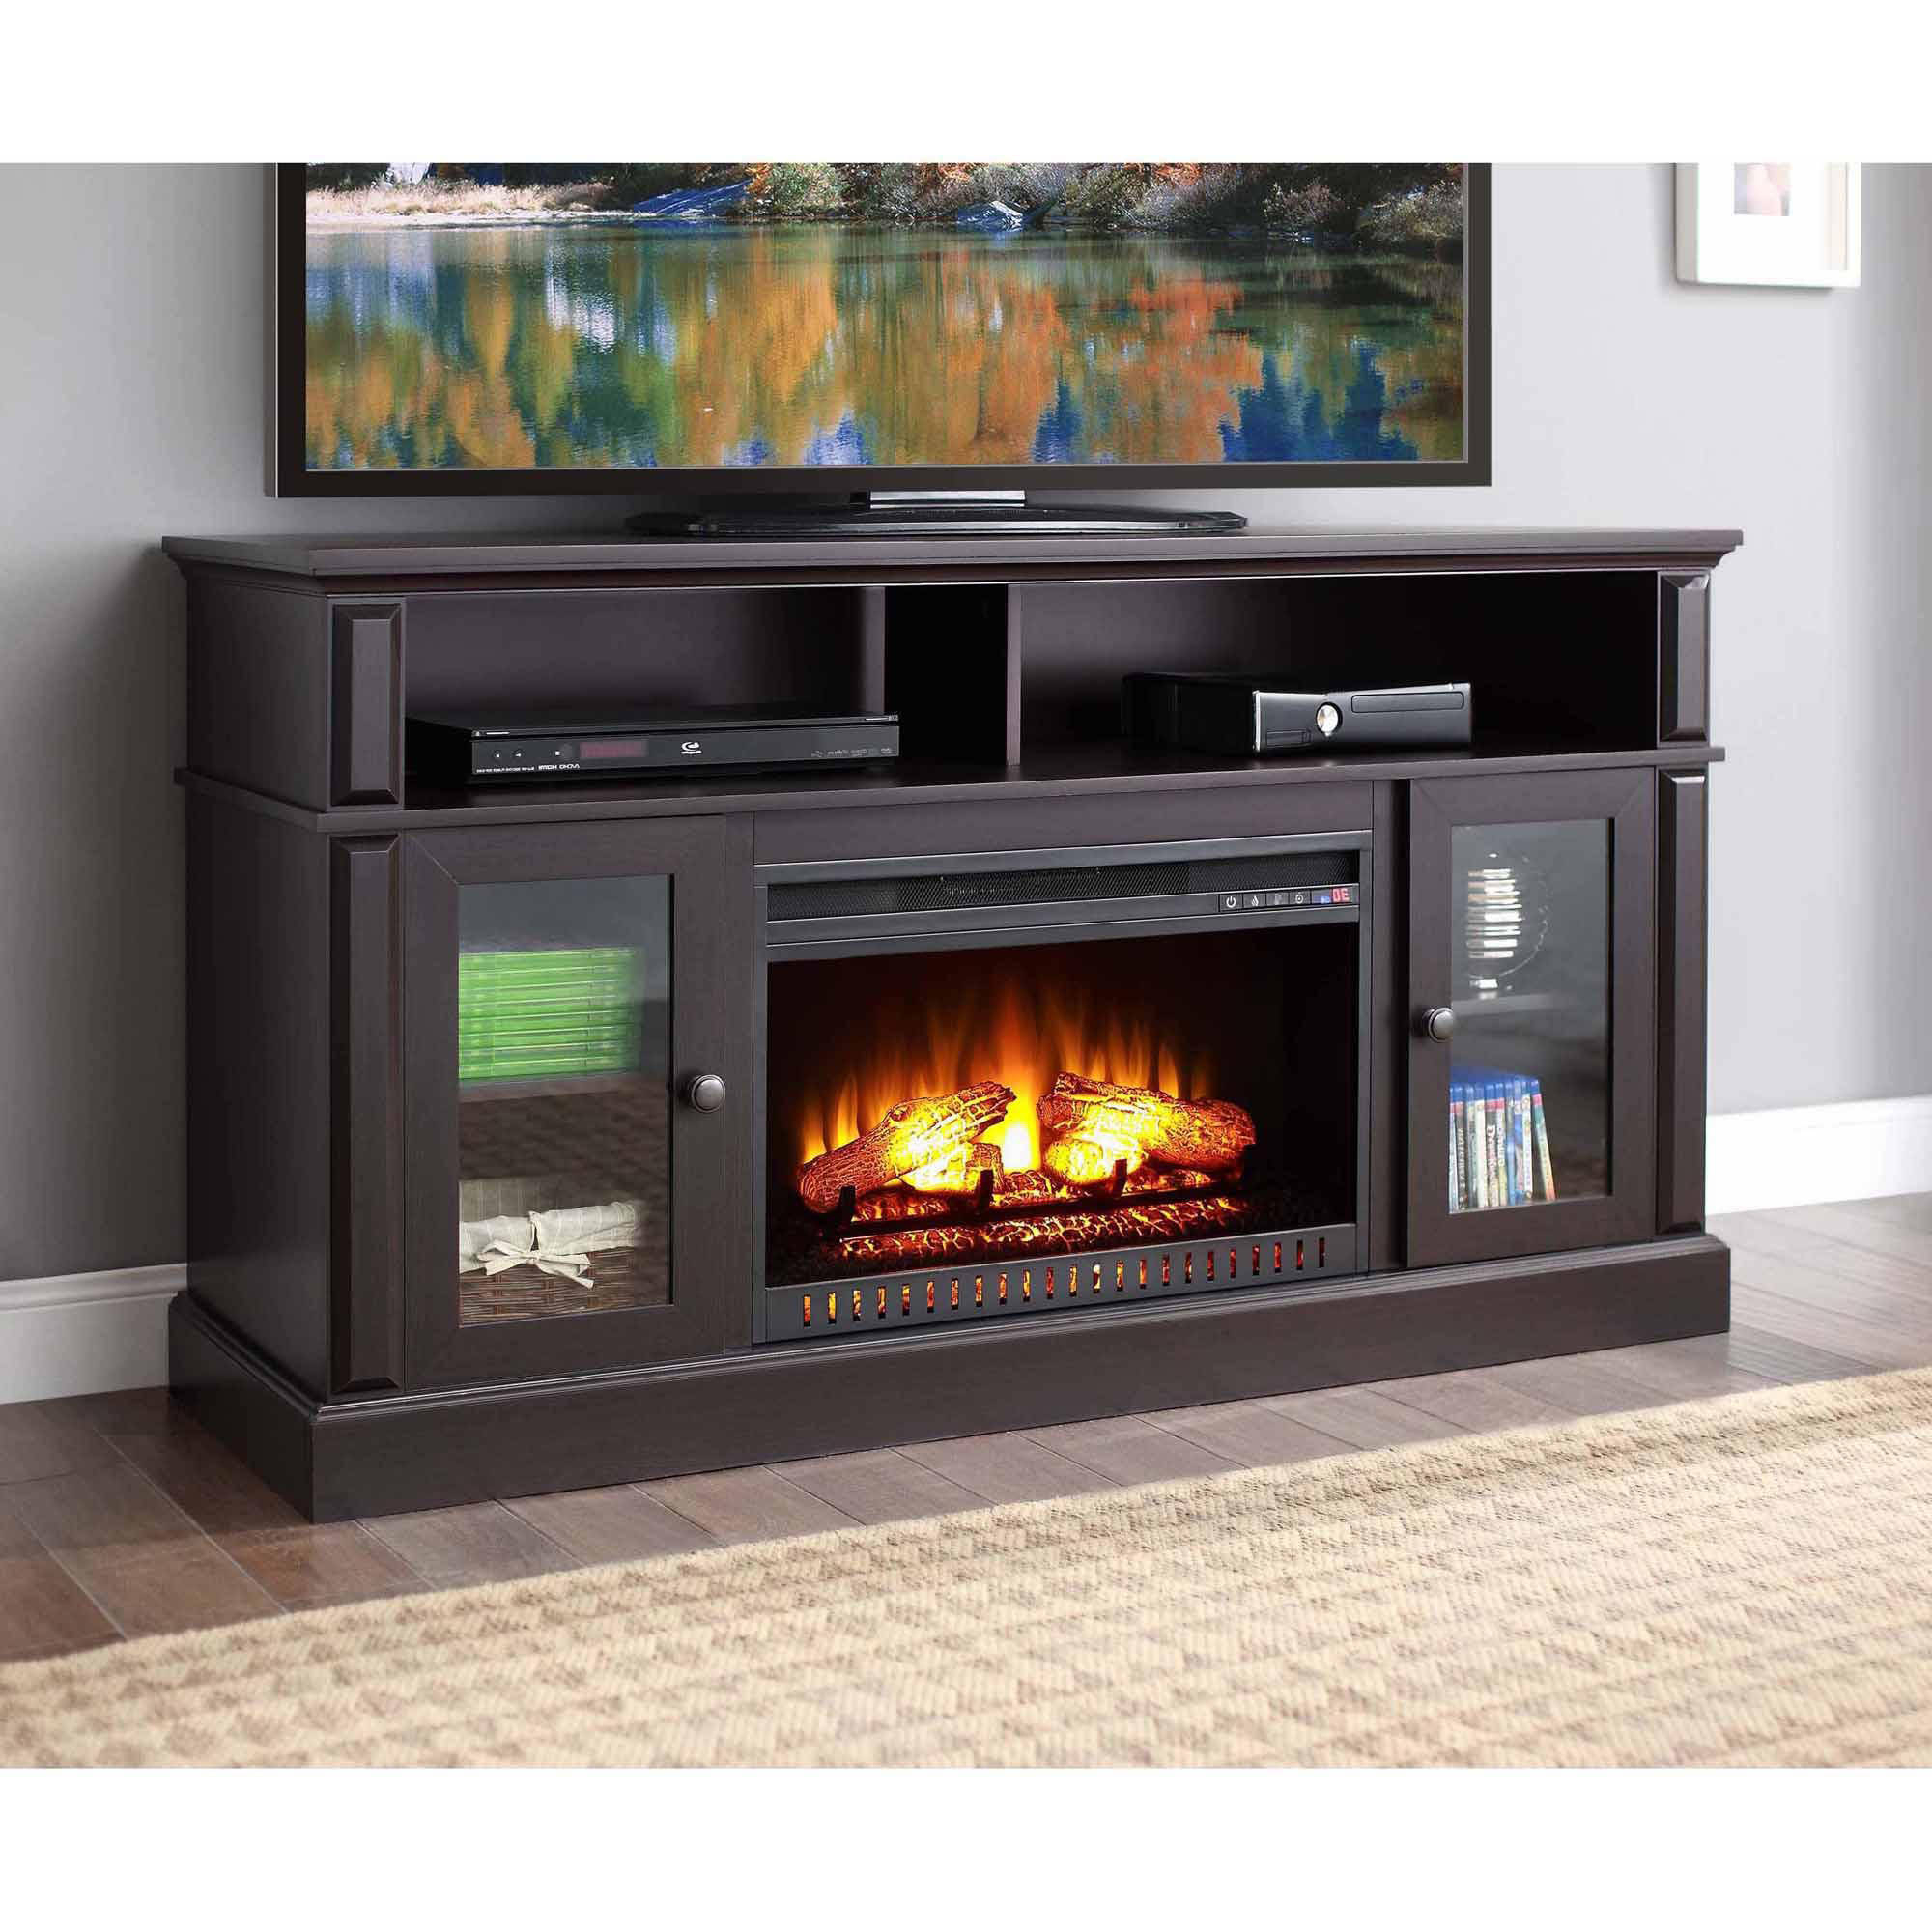 Favorite Whalen Barston Media Fireplace For Tv's Up To 70, Multiple With Fireplace Media Console Tv Stands With Weathered Finish (View 8 of 10)